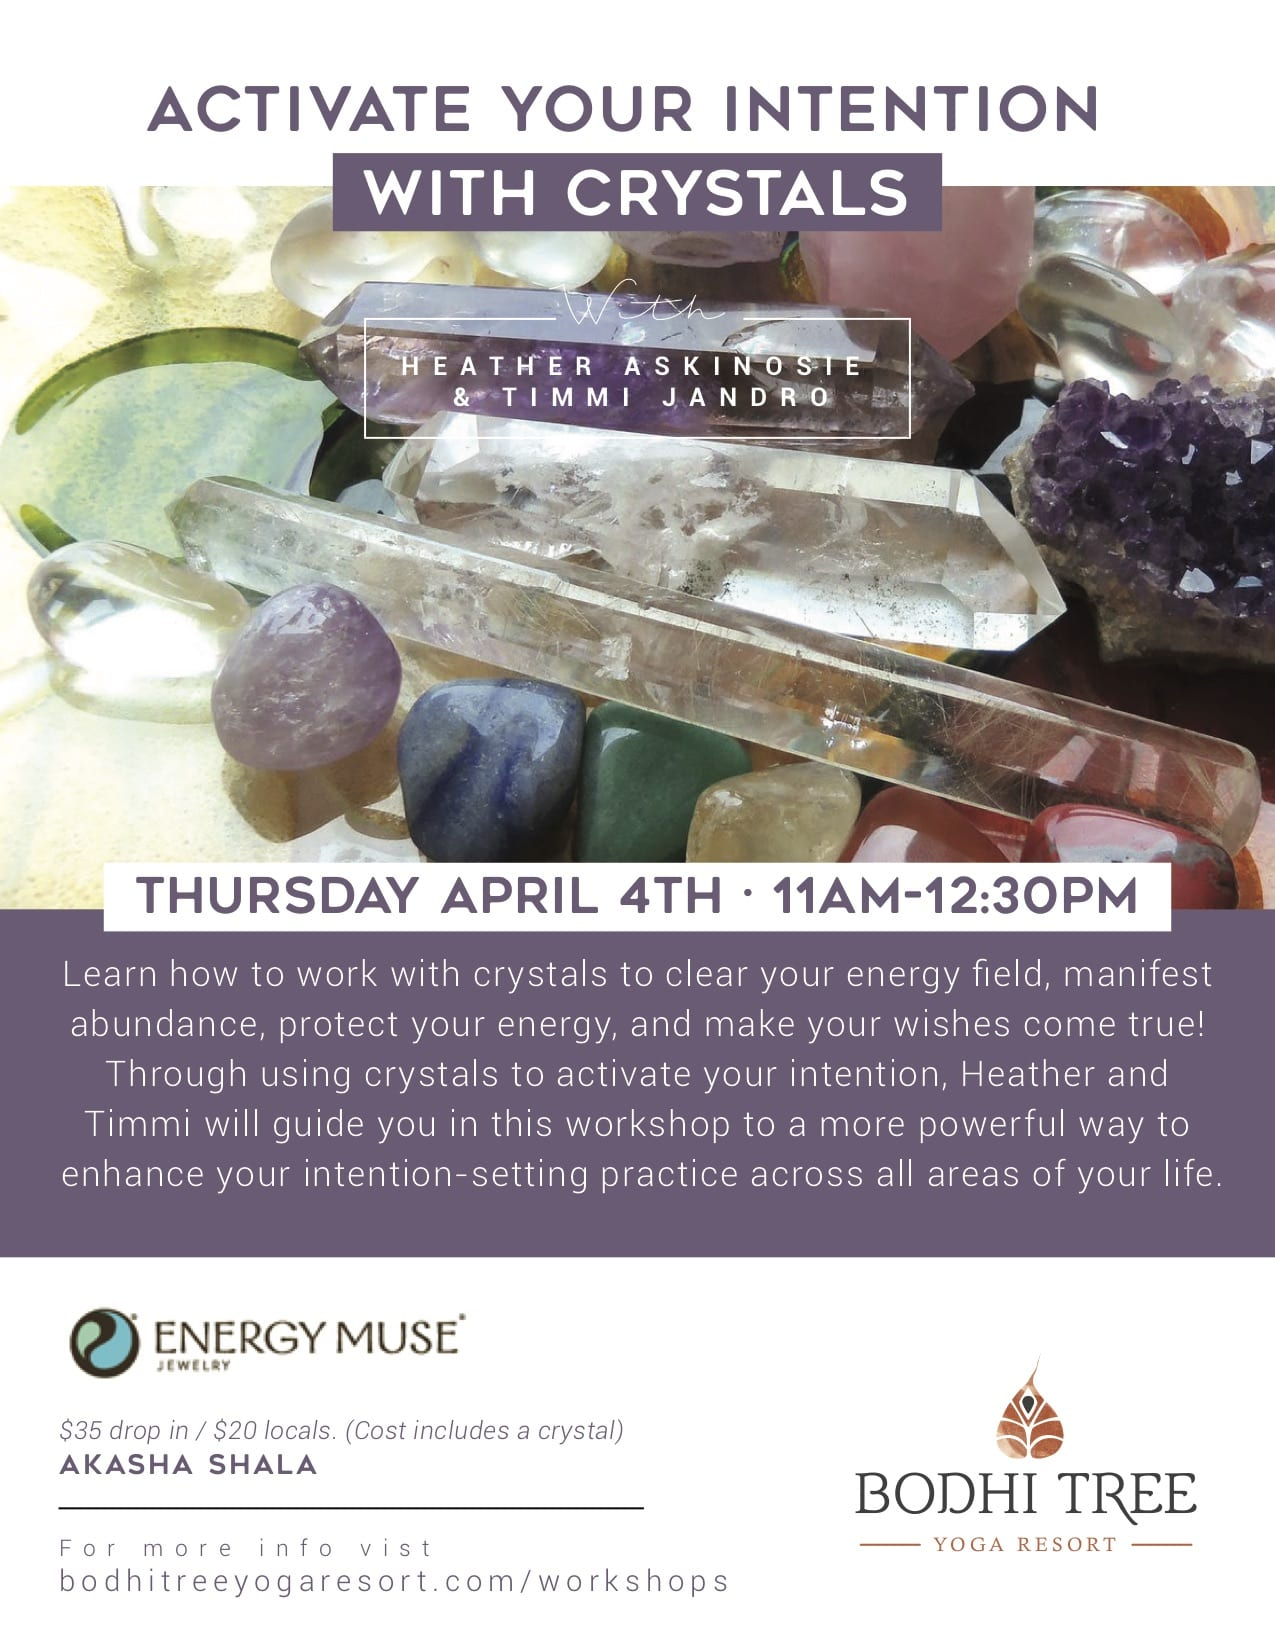 Activate Your Intention with Crystals - Bodhi Tree Yoga Resort